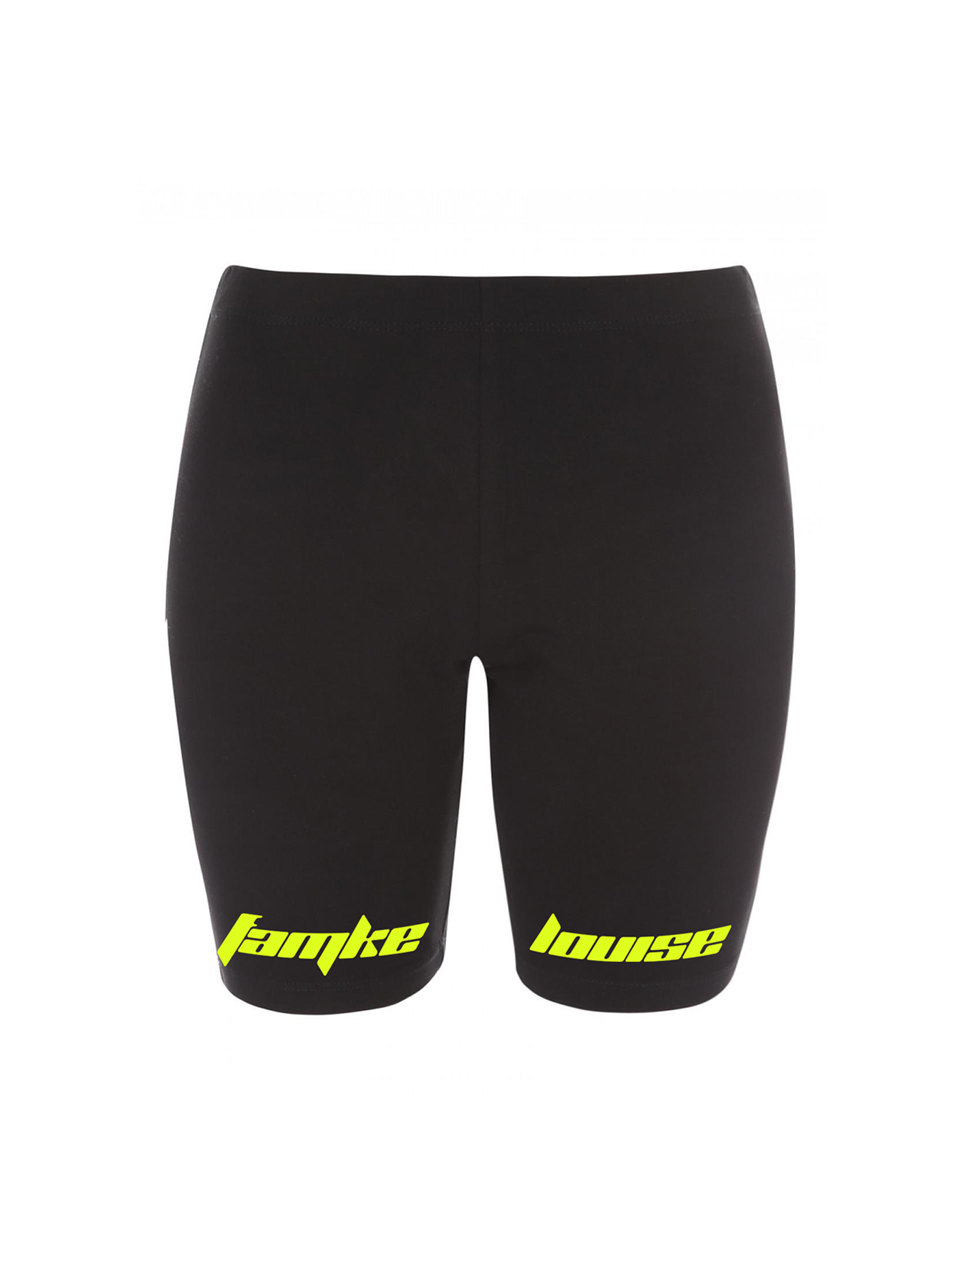 FAMKE LOUISE biker shorts <br>Black - Famke-Louise-Merchandise